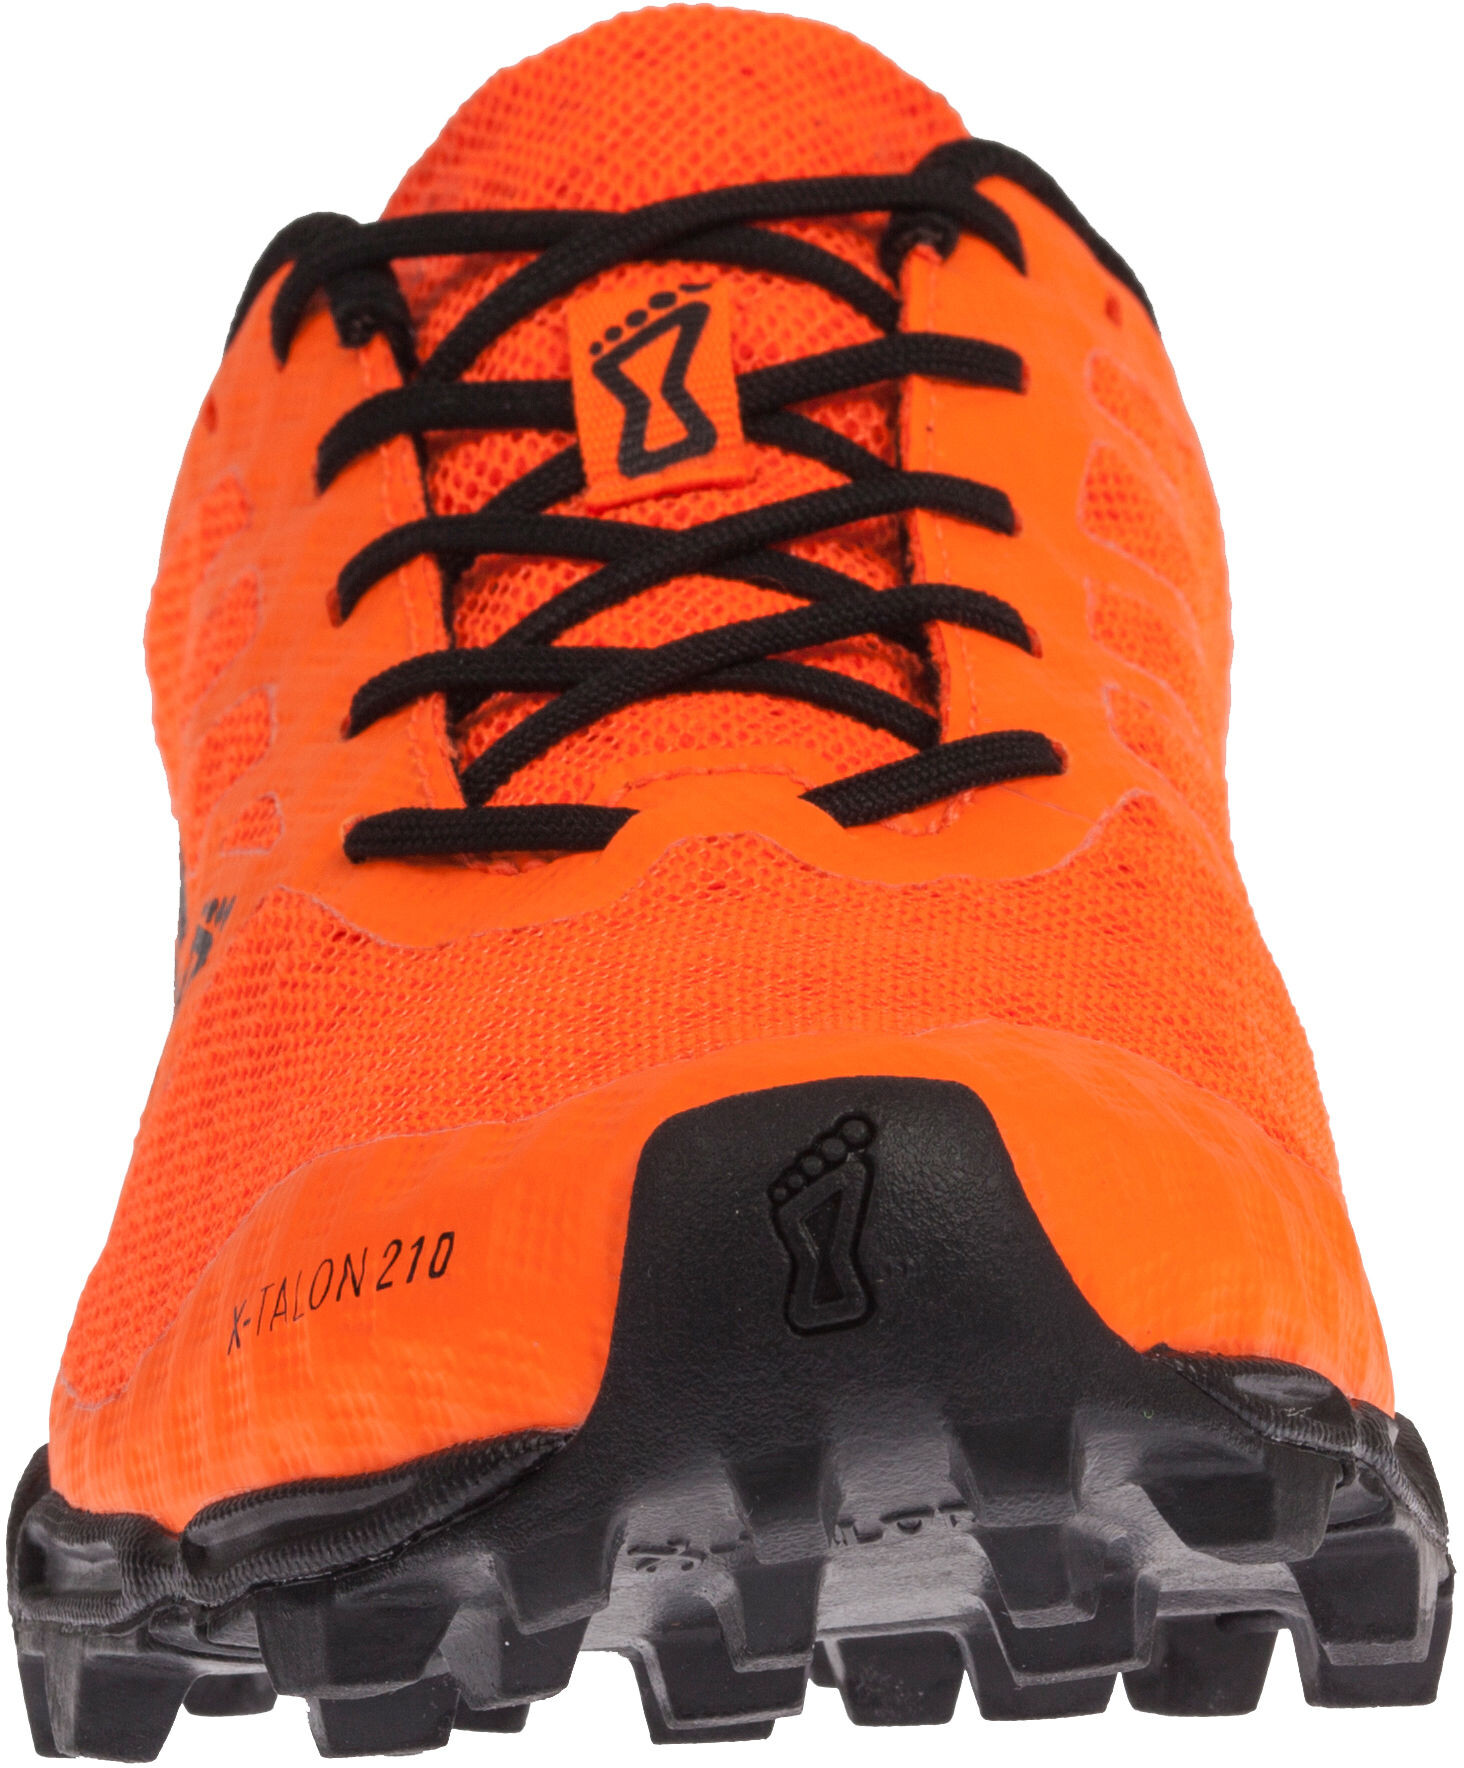 65a24c0cd0a7b0 inov-8 X-Talon 210 Shoes Unisex orange black